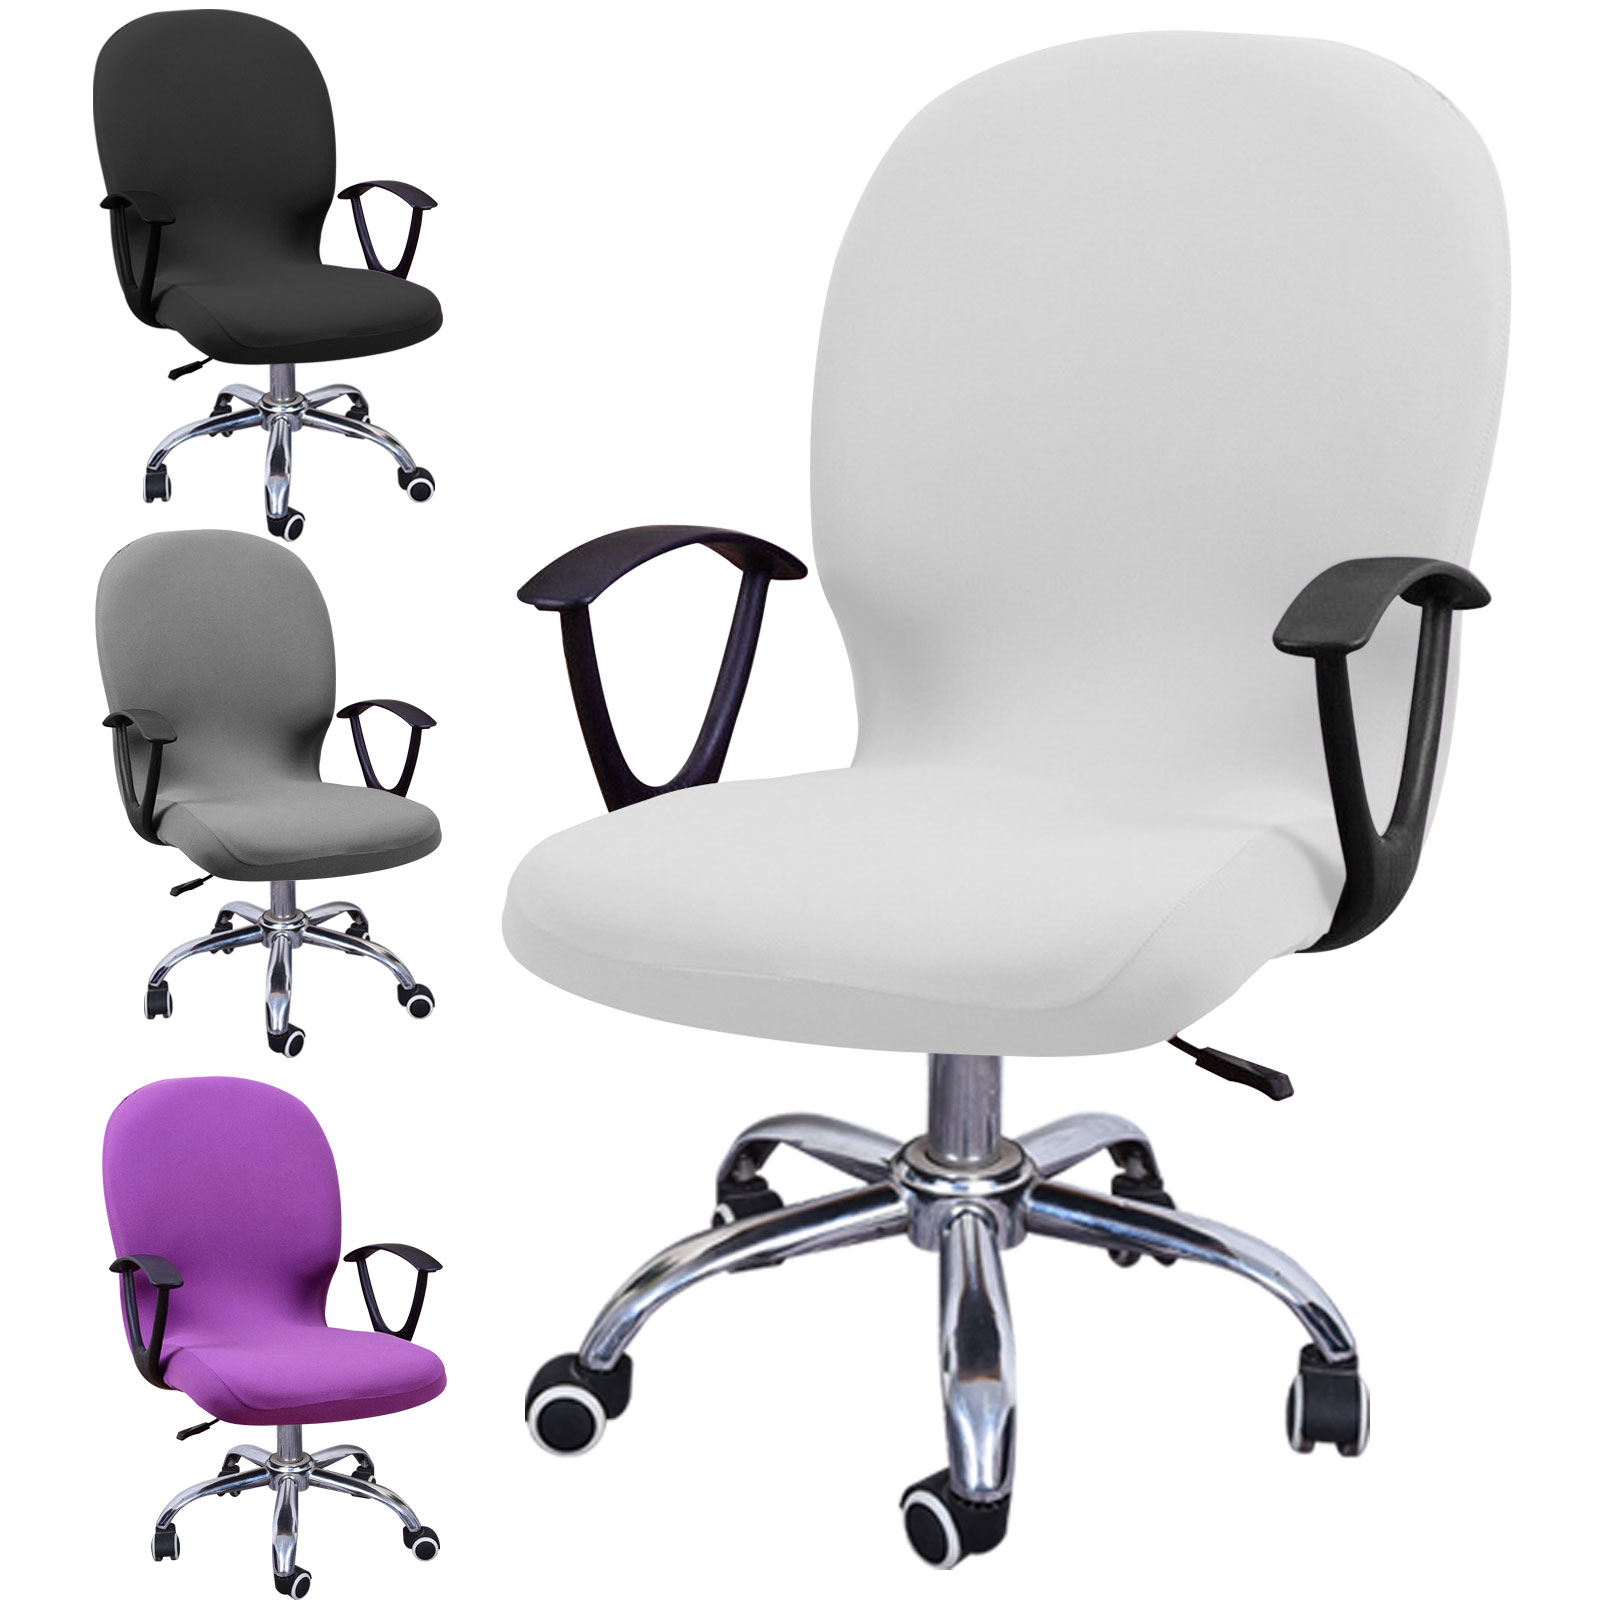 Swivel-Computer-Chair-Cover-Stretch-Remove-Office-Armchair-Slipcover-Seat-Cover thumbnail 12